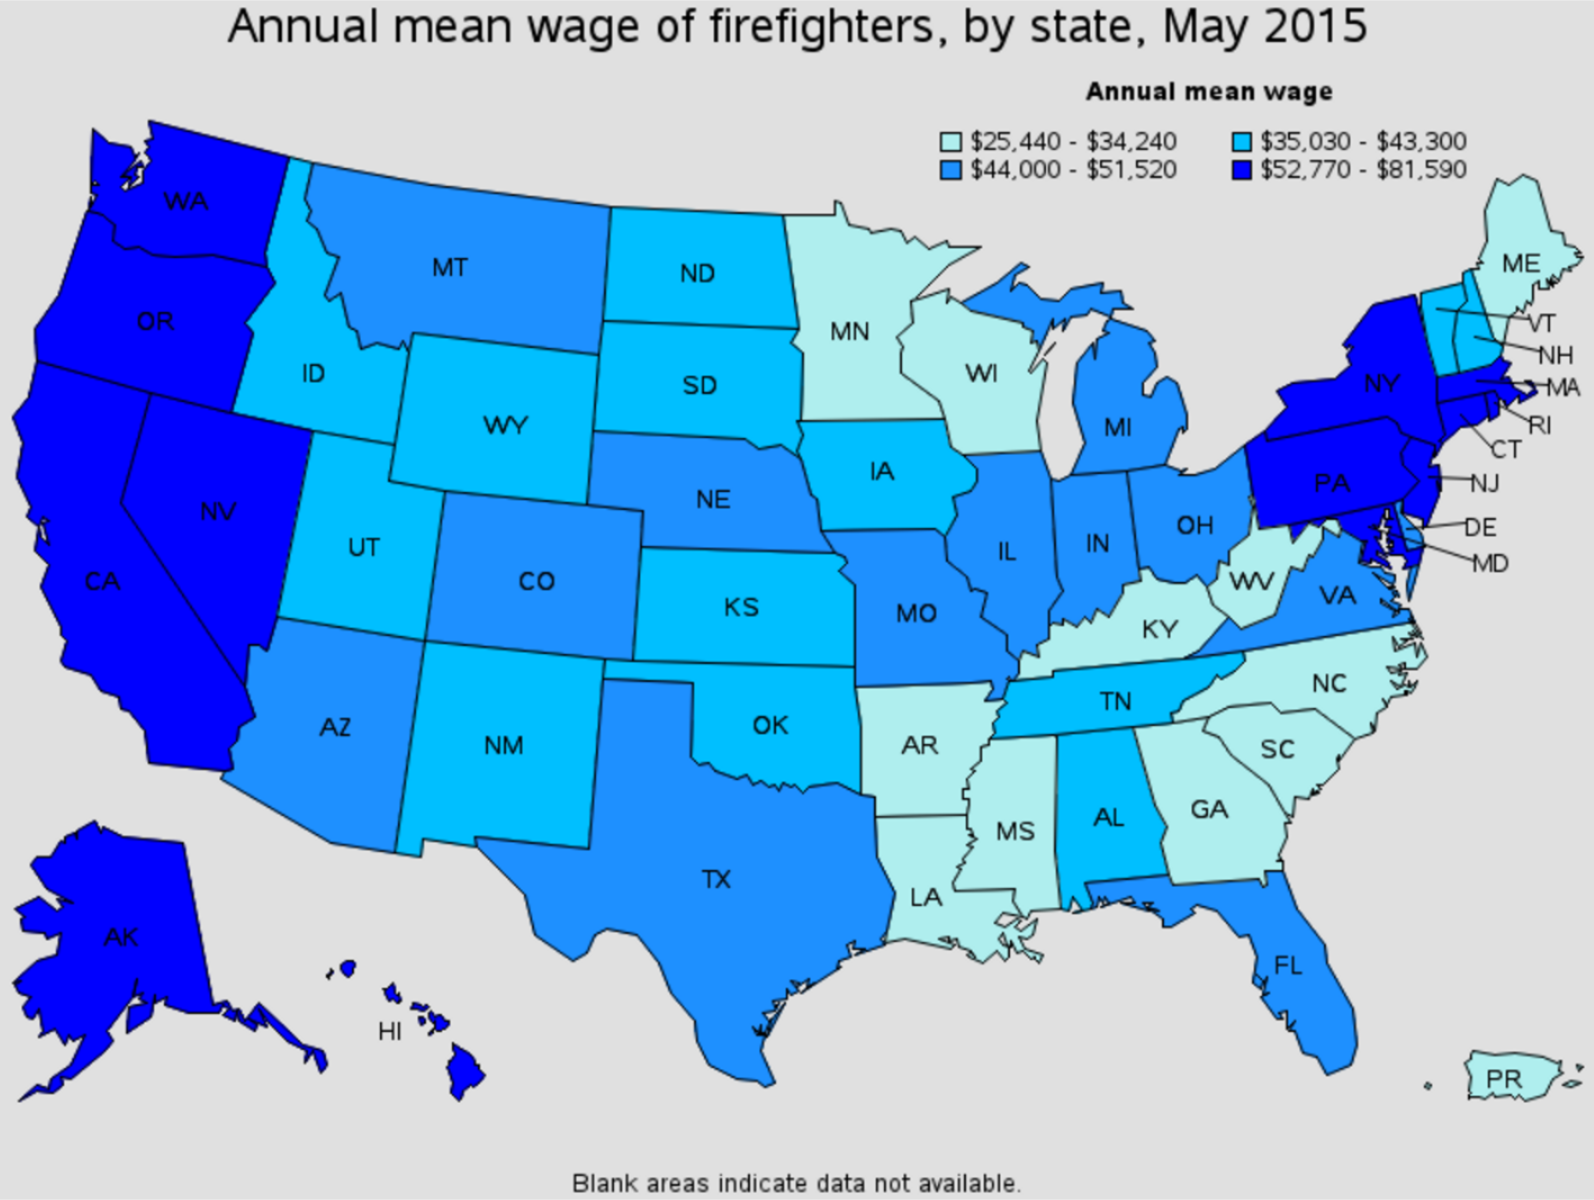 firefighter average salary by state Raymond Mississippi